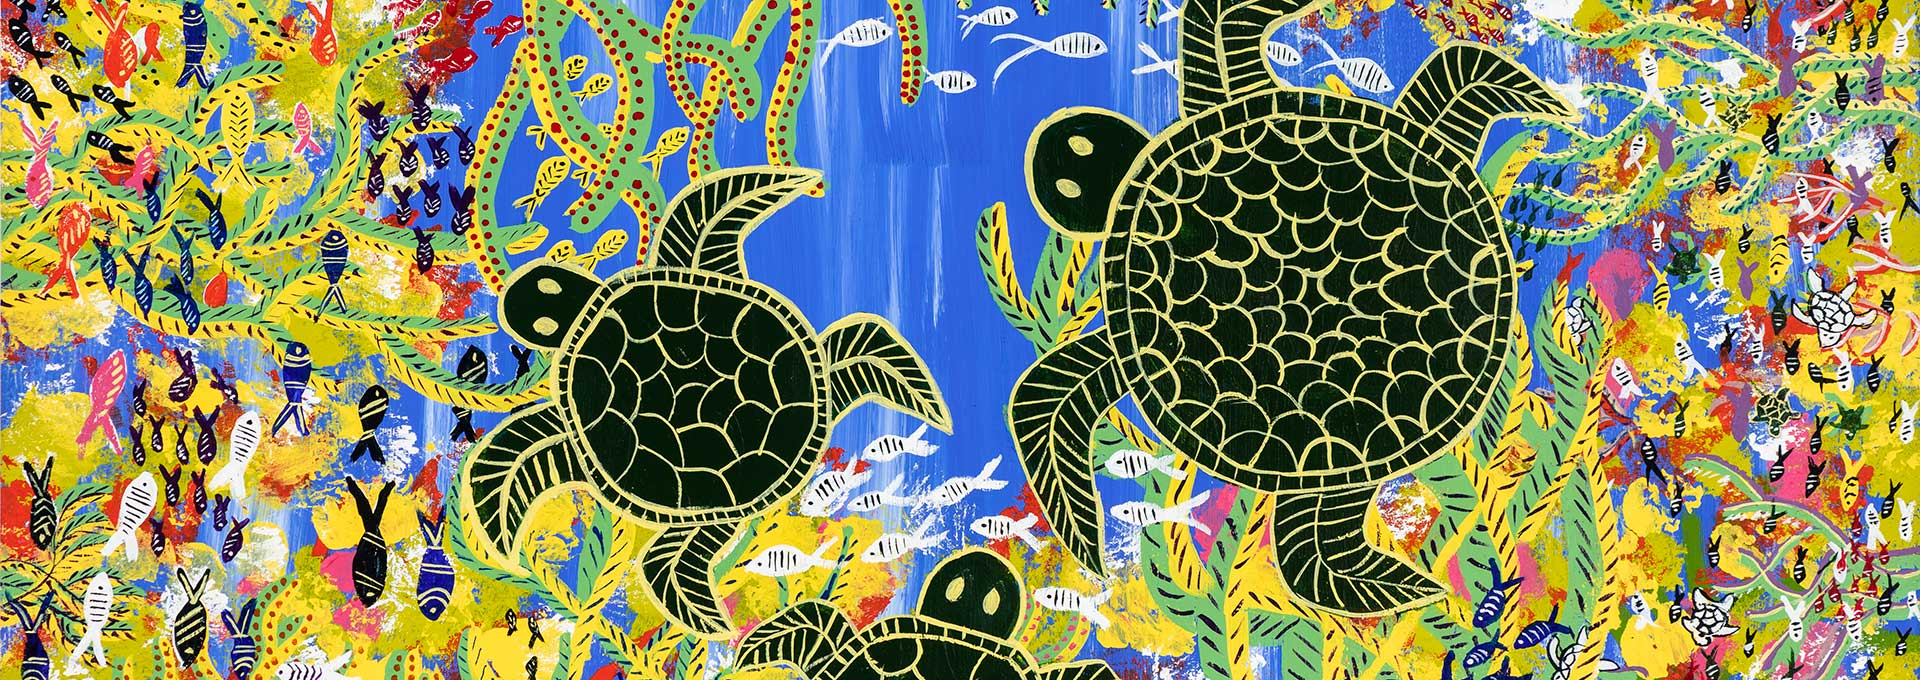 Luminous Reef by Esme Bowen, Hopevale Arts and Culture Centre (a colourful artwork of an ocean scene featuring turtles and other sea creatures and species).